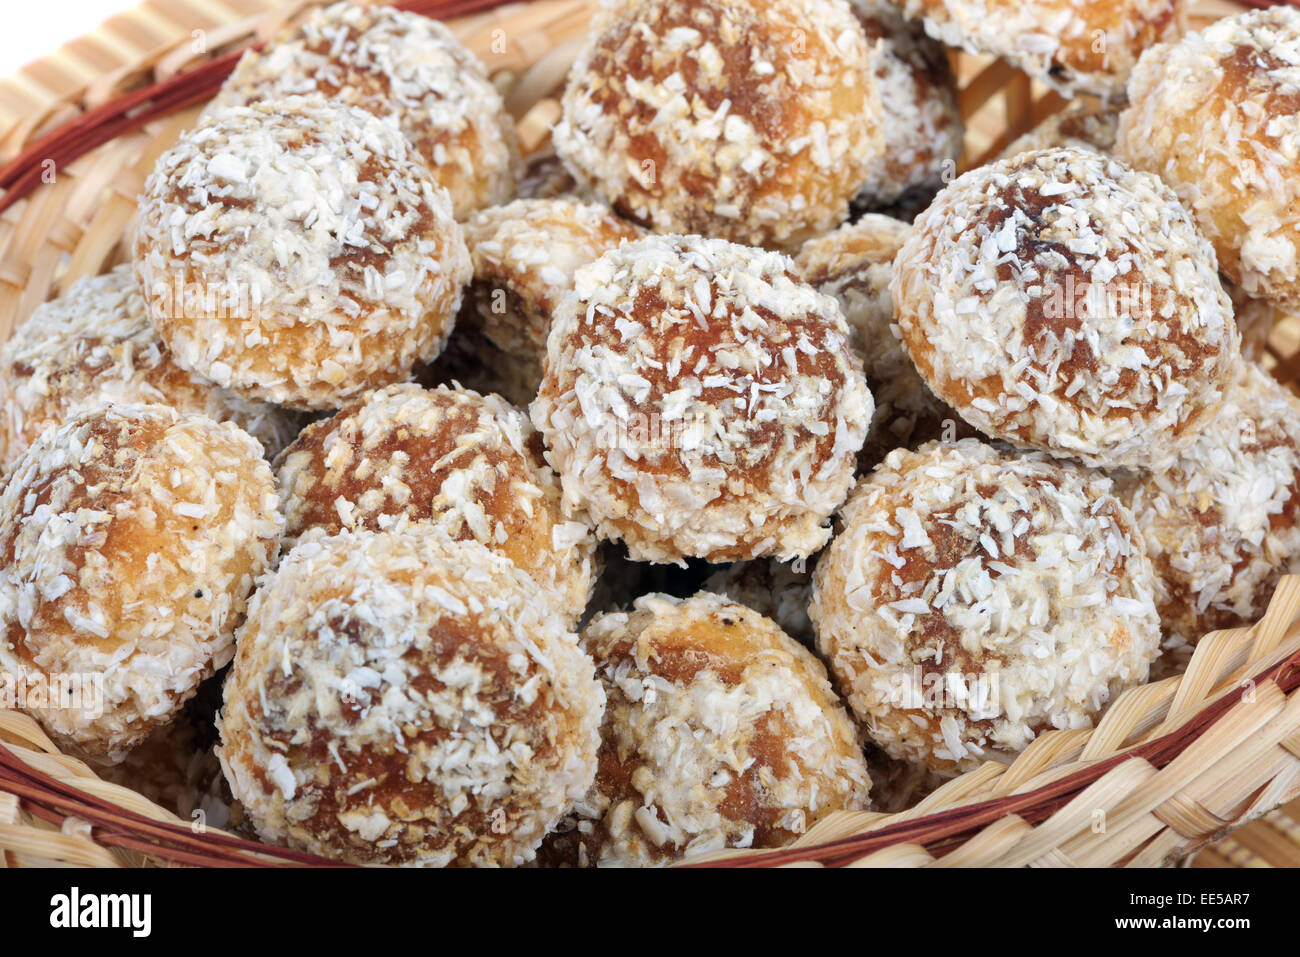 Small Russian cakes covered with coconut particles - Stock Image